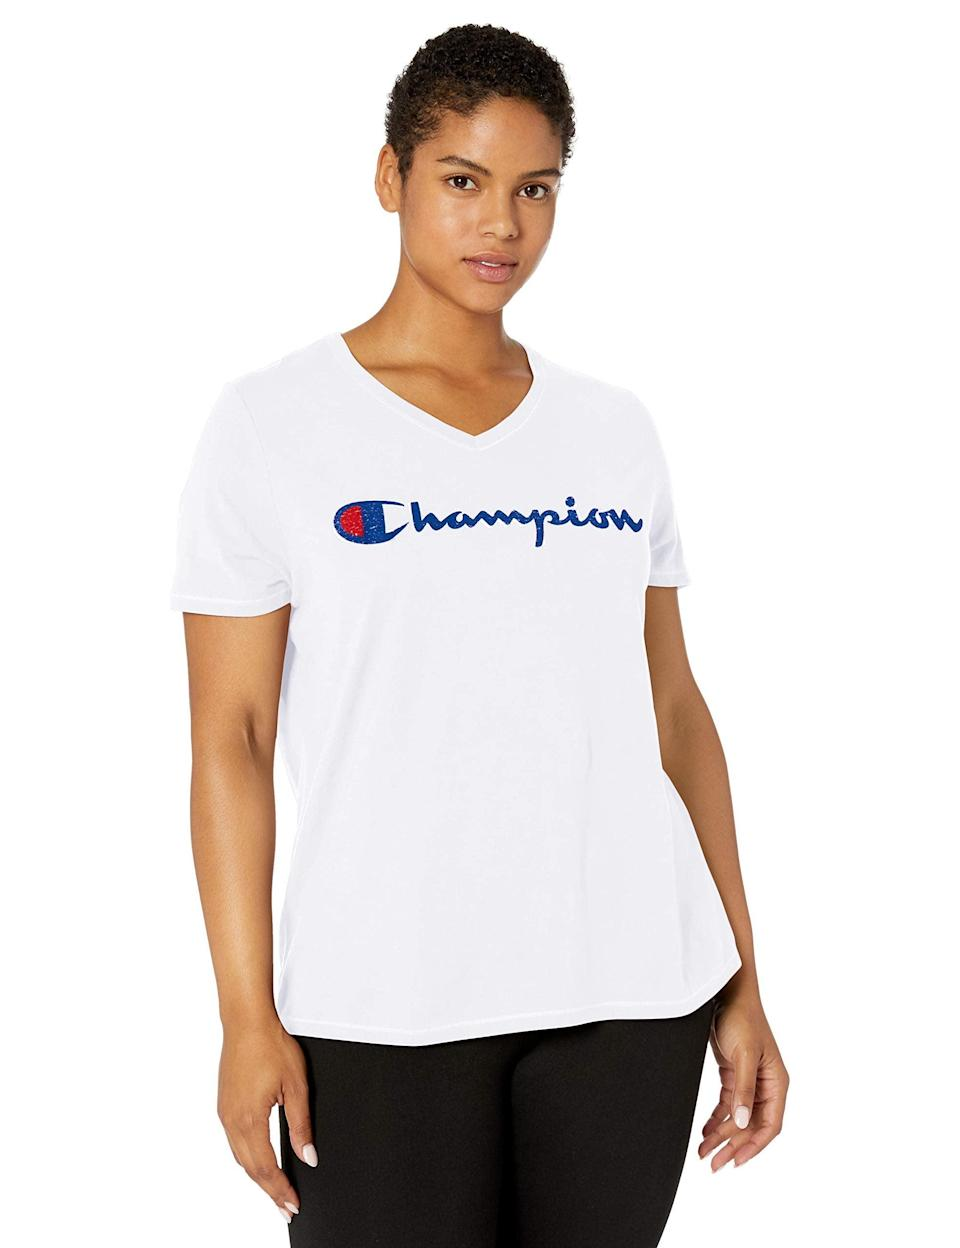 "<br> <br> <br><br><br><strong>Champion</strong> Plus Size Double Dry Cotton V-Neck Tee, $, available at <a href=""https://amzn.to/3iUKdPi"" rel=""nofollow noopener"" target=""_blank"" data-ylk=""slk:Amazon Fashion"" class=""link rapid-noclick-resp"">Amazon Fashion</a>"